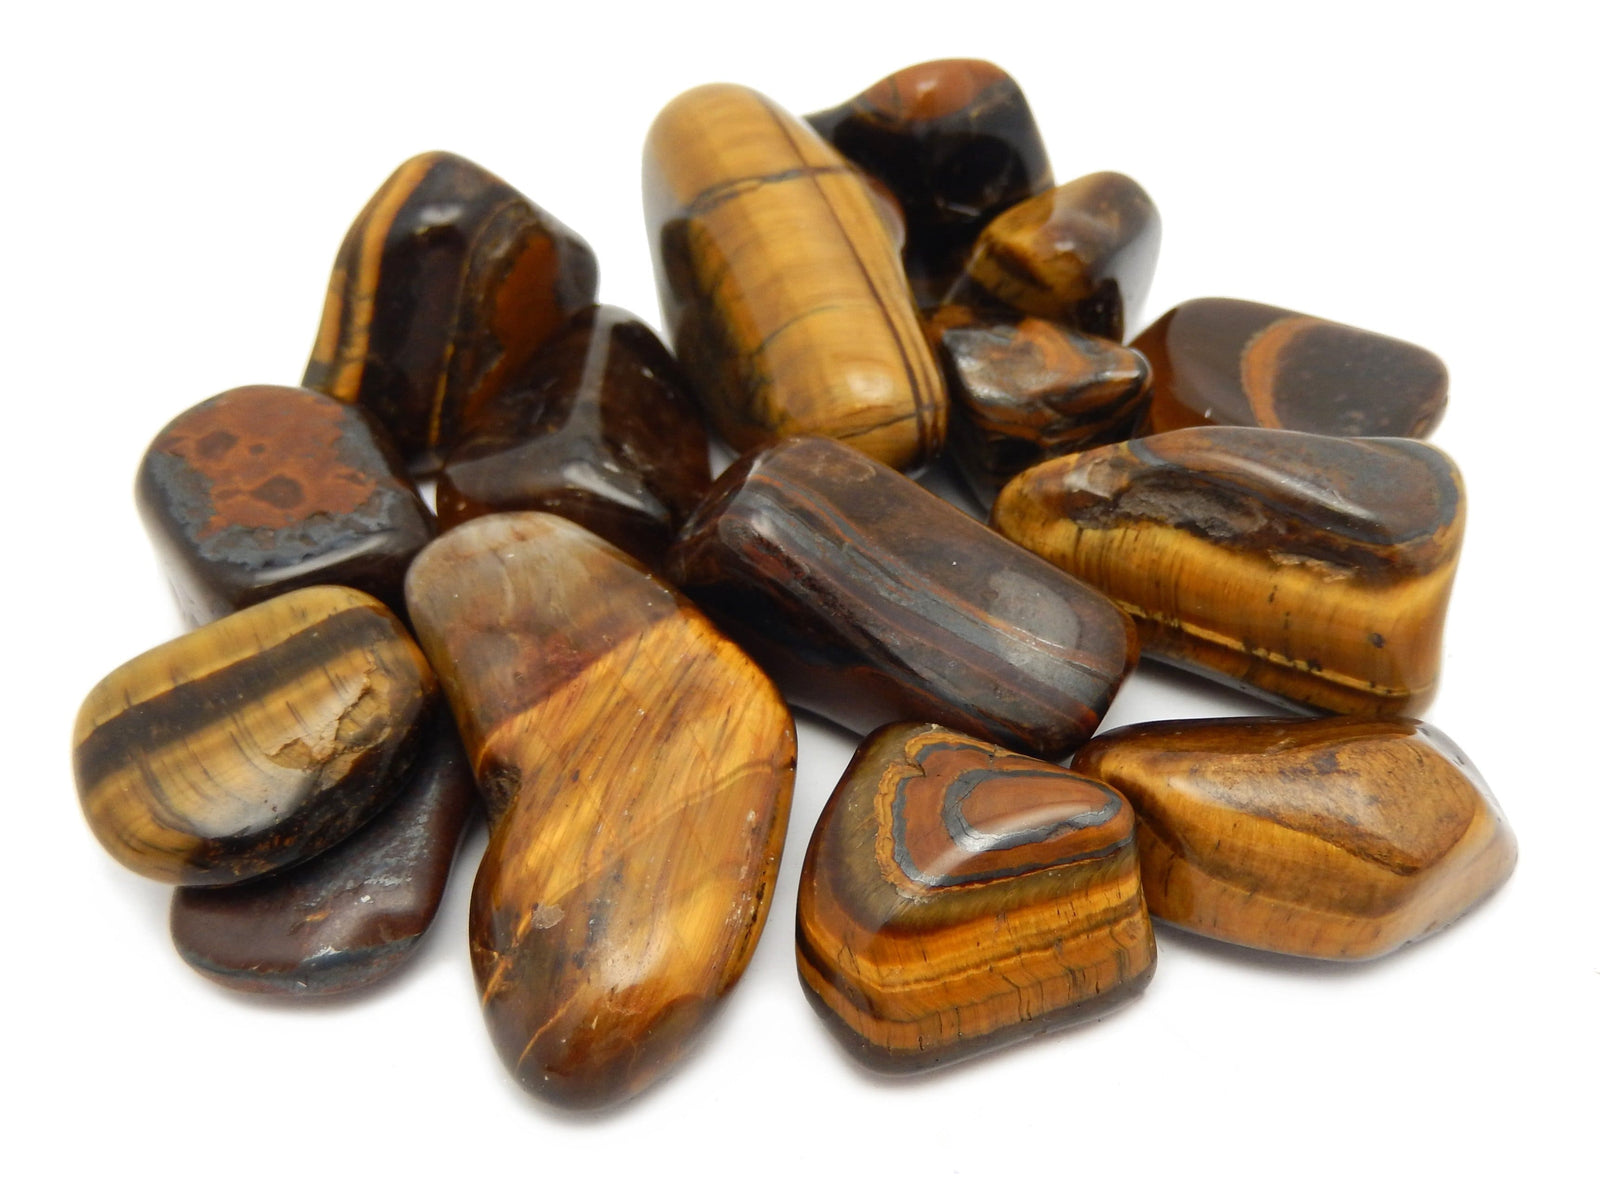 Cabochons - Tiger Eye Stone - Mixed Shapes Cabochons - Jewelry Making - Jewelry Craft Supplies - Decor - Choose 1,3,5, 10 Stones (TS-07)